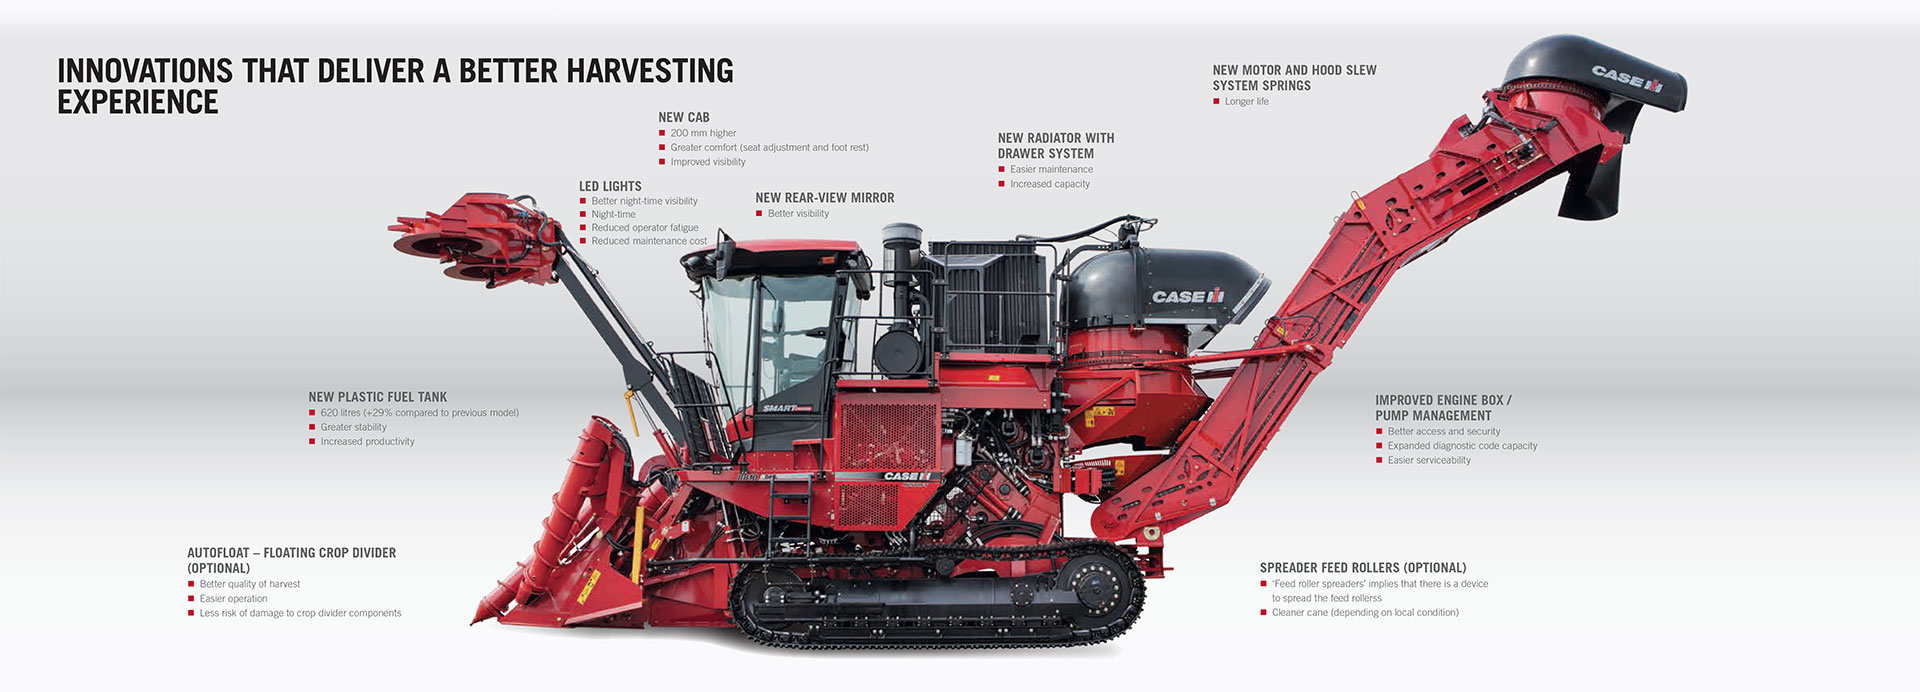 caseih harvester innovations